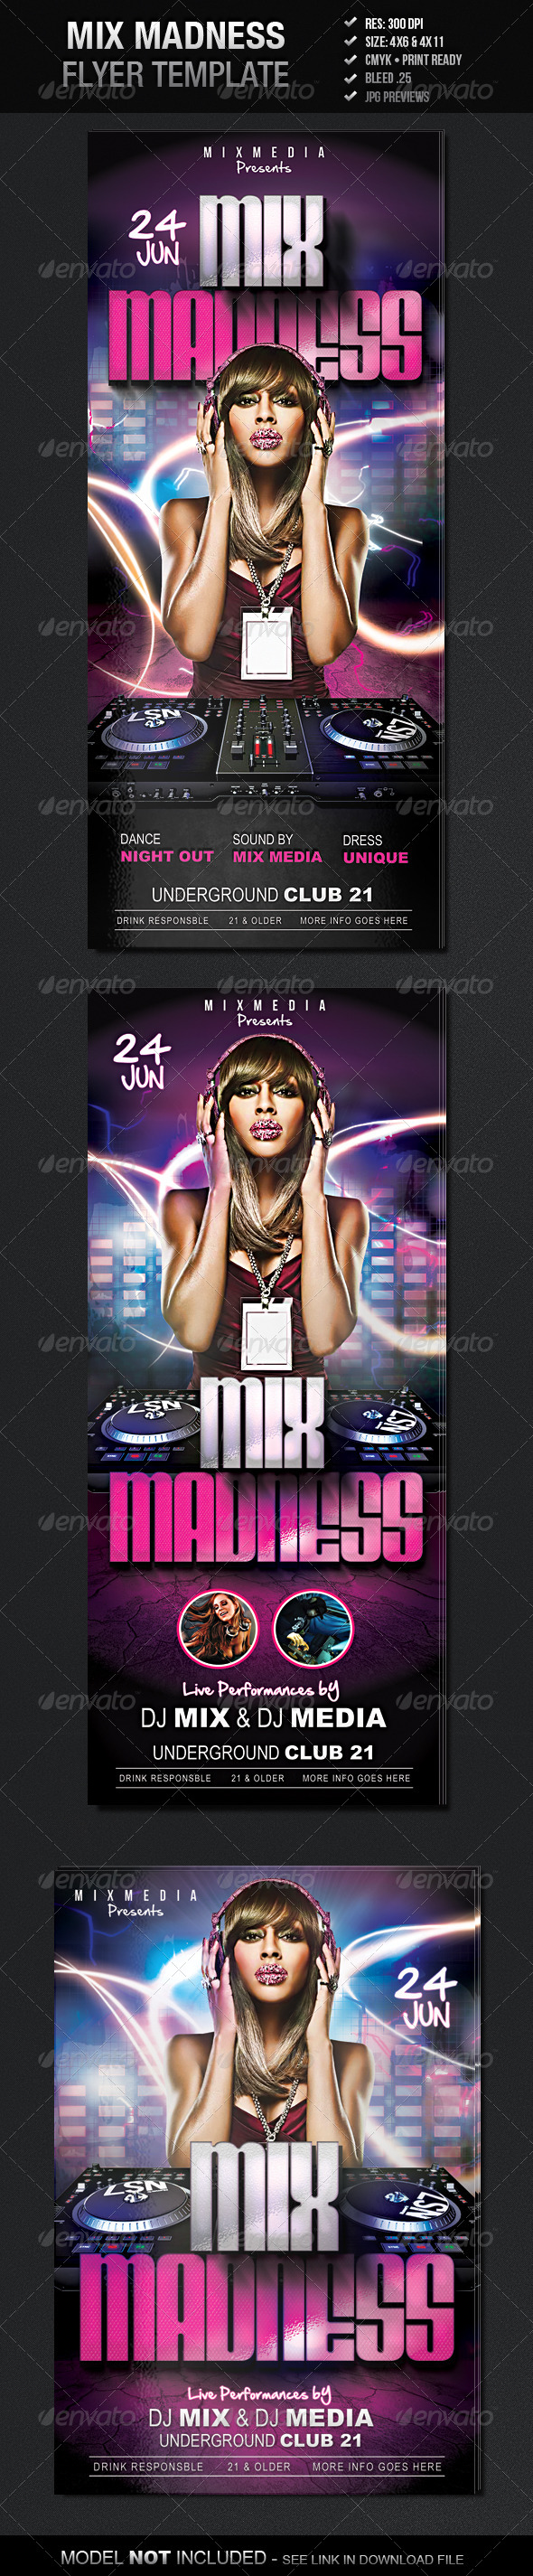 Mix Madness Flyer Template - Clubs & Parties Events